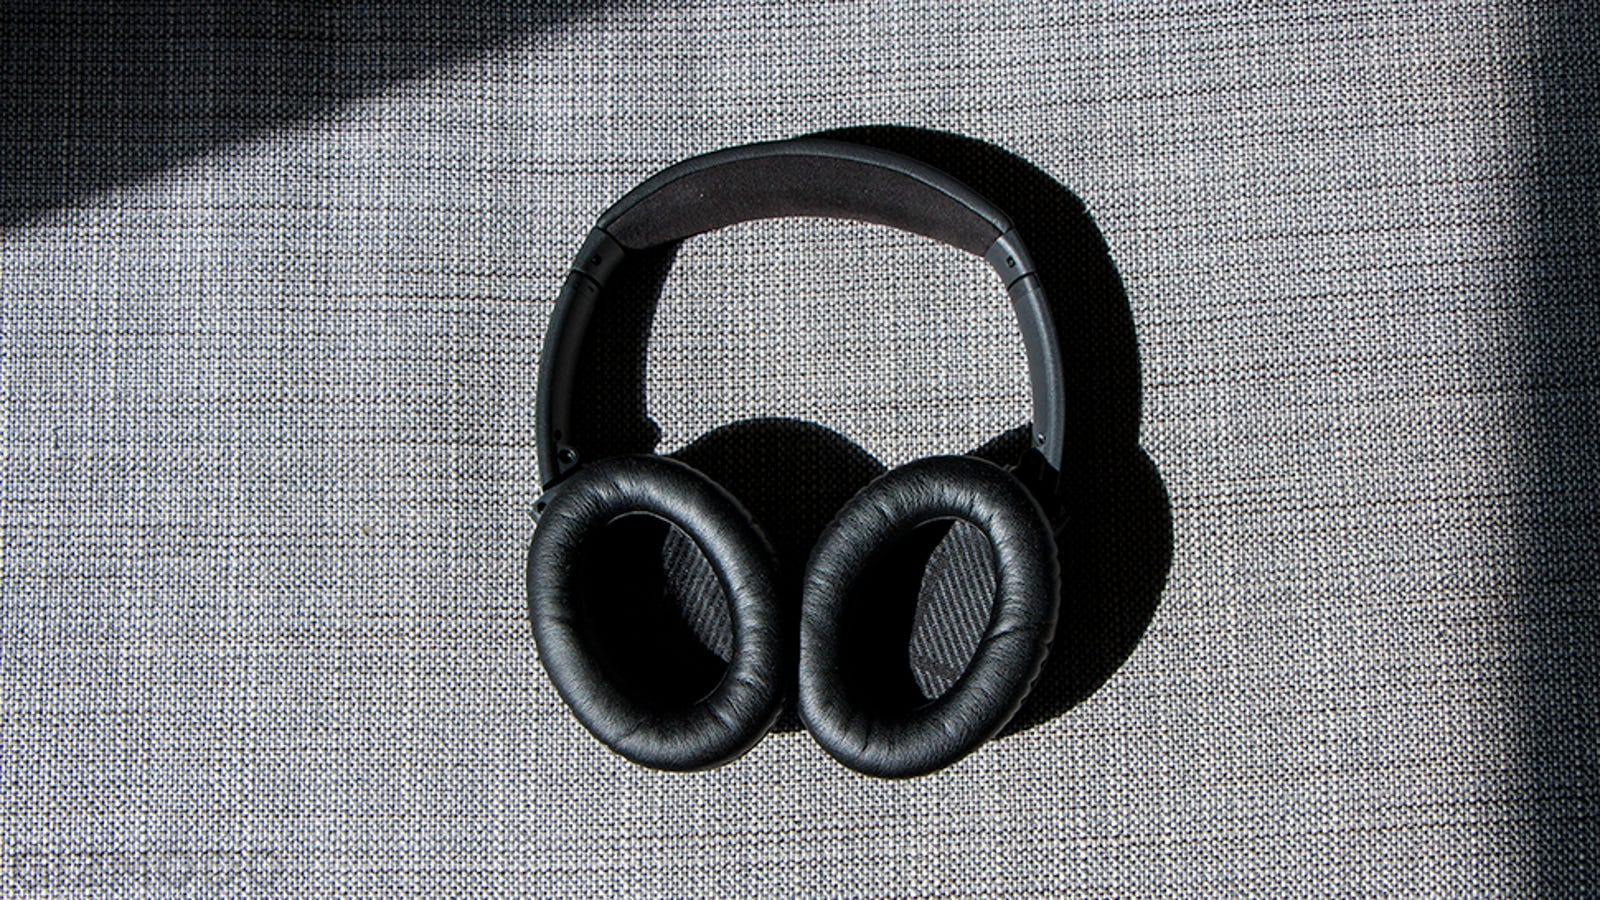 bluetooth headphones hotncold